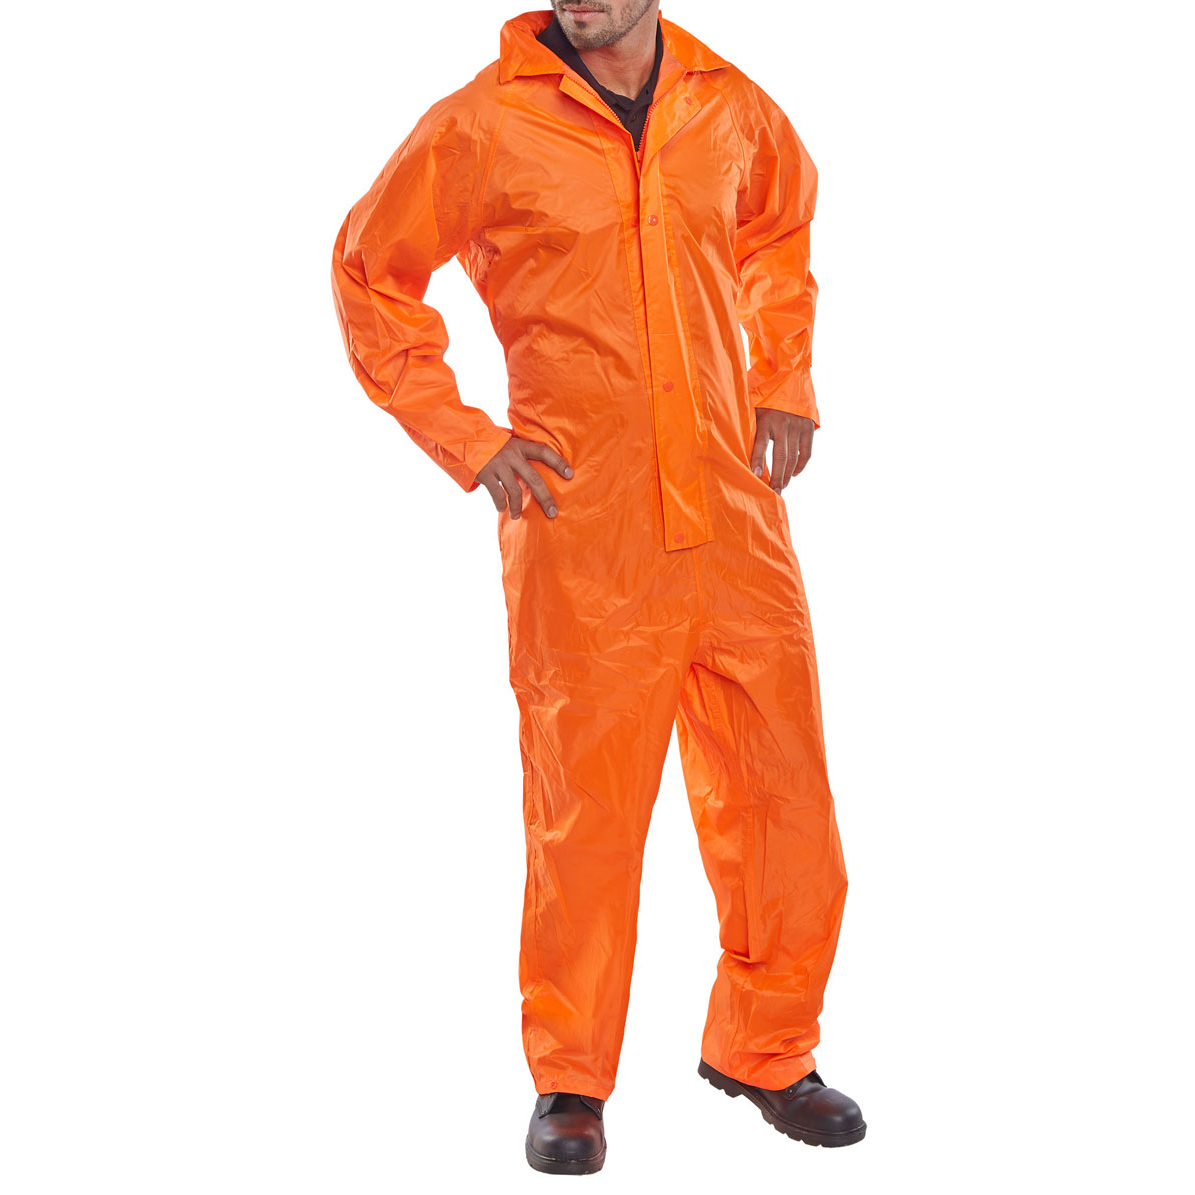 B-Dri Weatherproof Coveralls Nylon Medium Orange Ref NBDCORM *Up to 3 Day Leadtime*